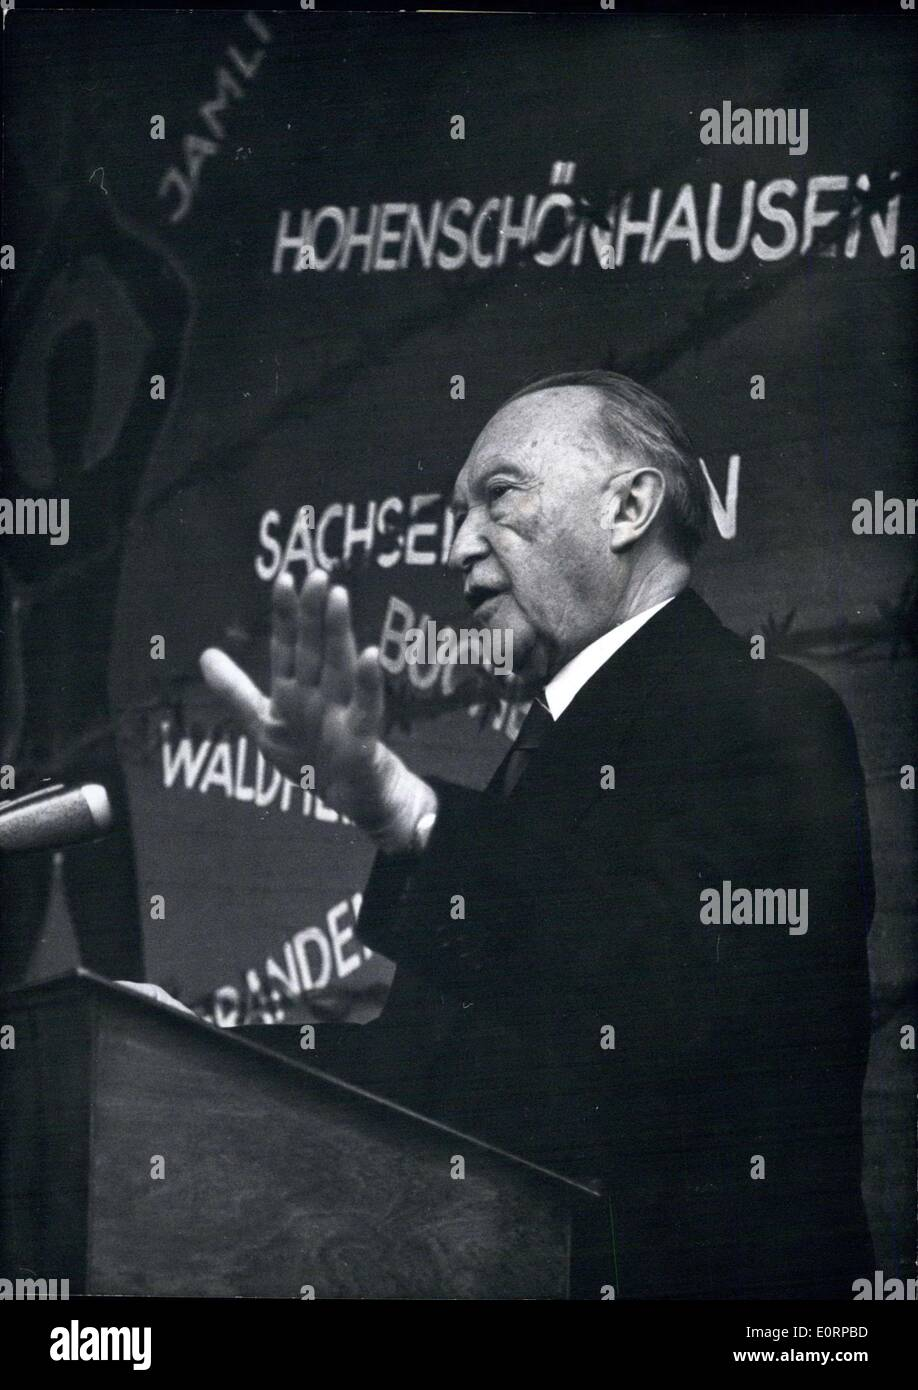 Feb. 15, 1960 - 10 years Association of Victims of Stalinism: The Association of Victims of Stalinism celebrates its 10th anniversary on Feb. 13th in Konigswinter (on Rhine). Most prominent guest at the celebration was Federal Chancellor Dr. Adenauer. The association is an organisation of former political prisoners of the Soviet system. Photo shows Dr. Adenauer during his speech at the celebration. In background a map crossed with barbed wire, indicating the places of sorrow for the victims of Stalinism. - Stock Image